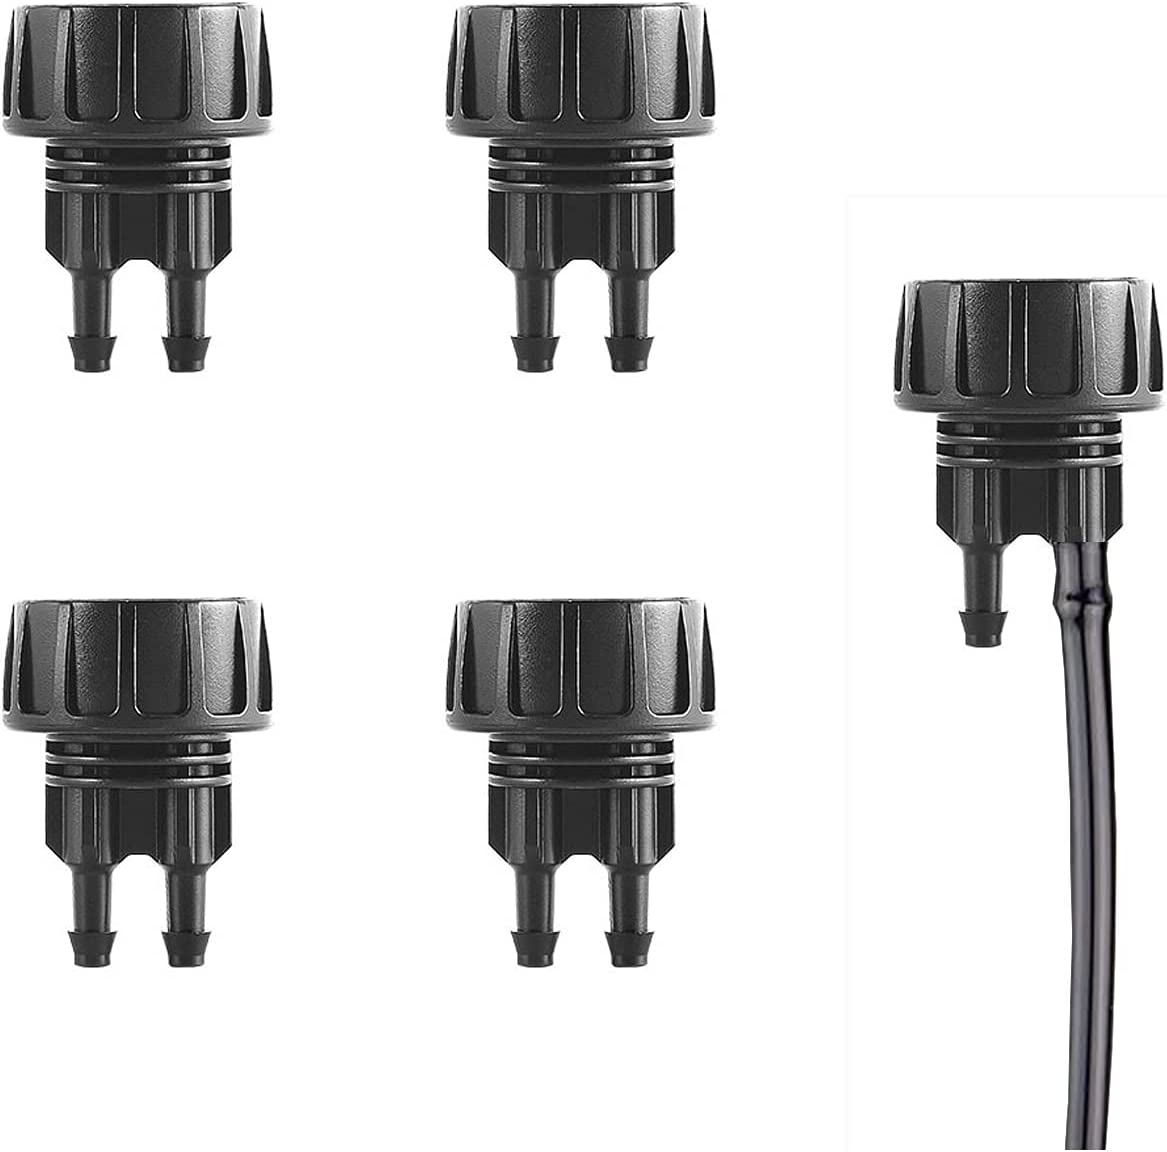 4Pcs Faucet to 1/4 Inch Drip Irrigation Tube Adapter 3/4